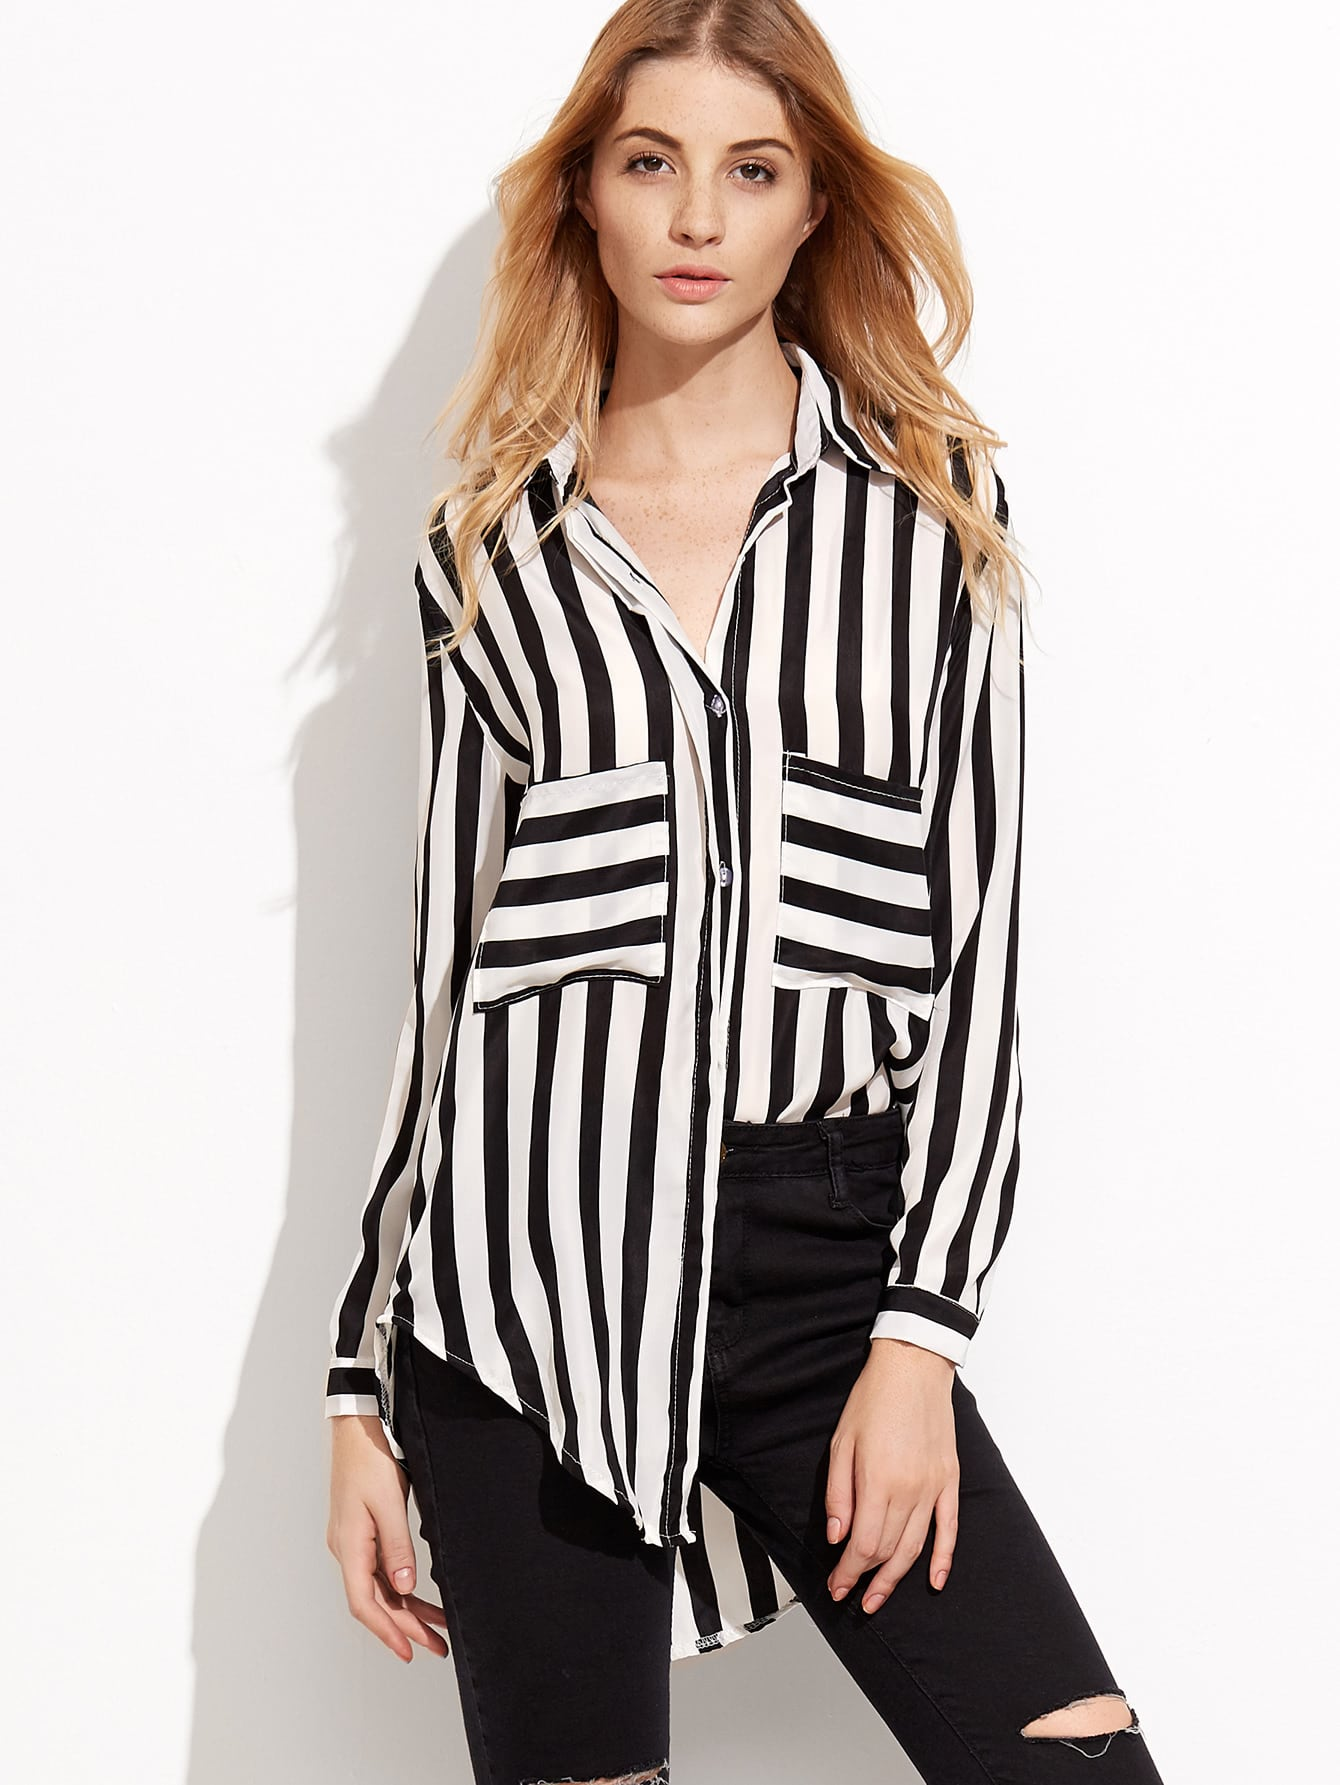 Contrast Striped Pockets High Low Shirt blouse160825002